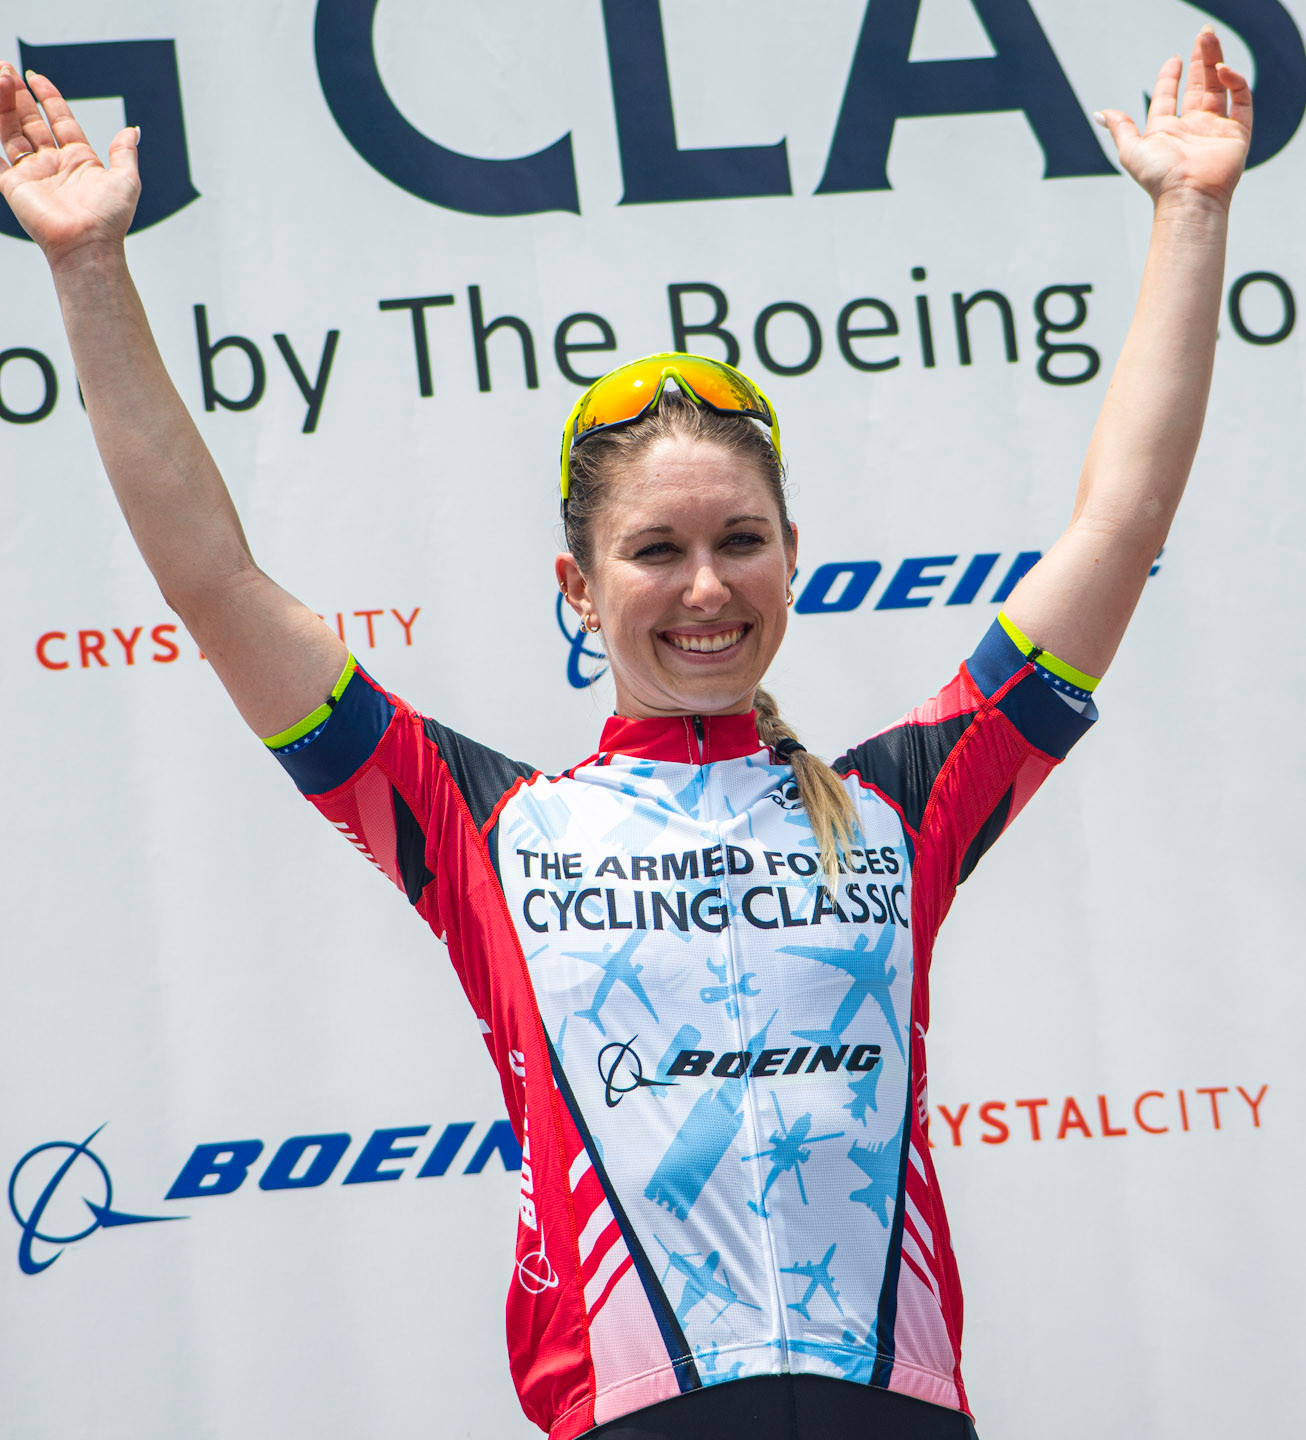 Victory at the Crystal Cup